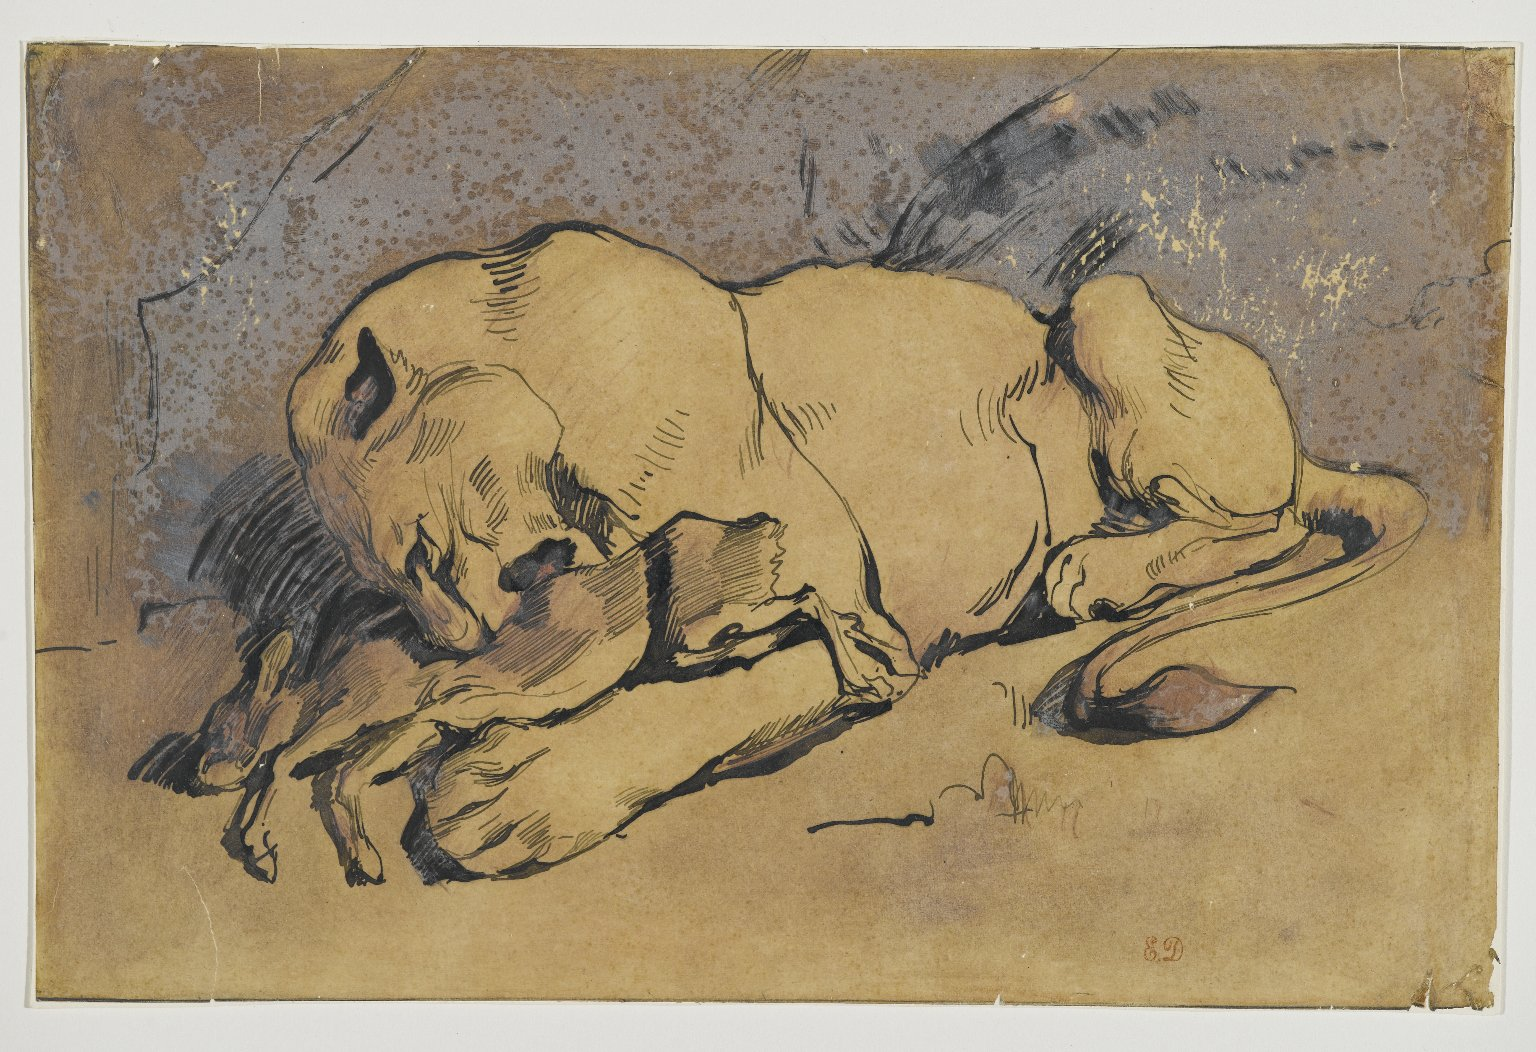 Brooklyn Museum: Lioness Devouring a Rabbit